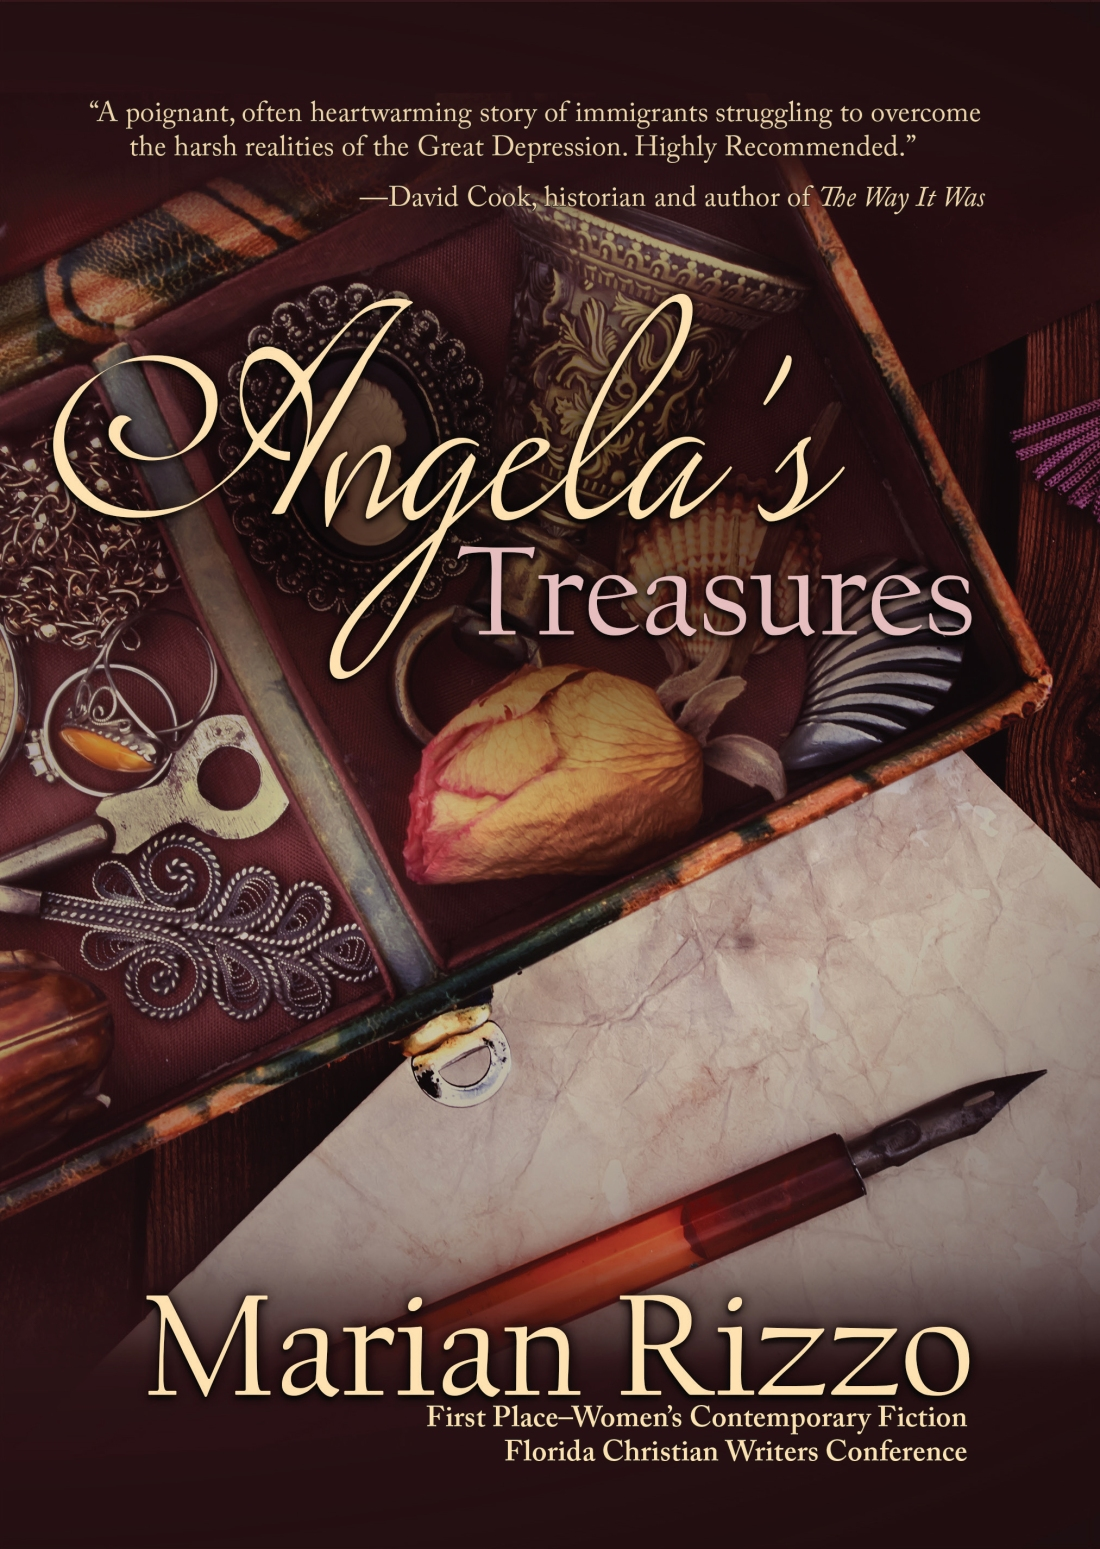 Angela's Treasures cover hardback.indd